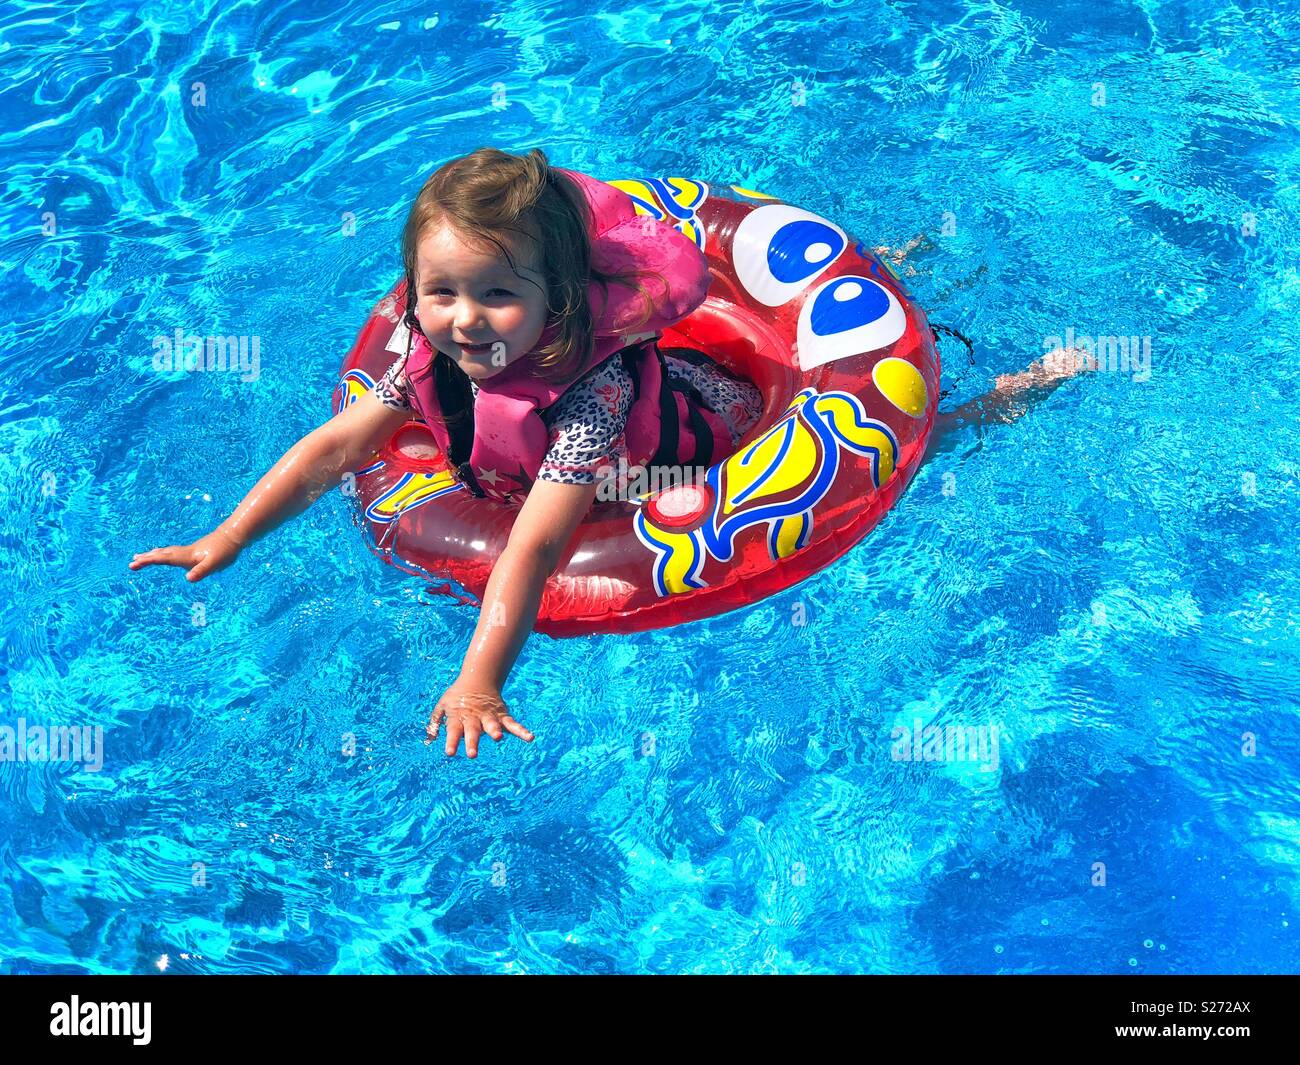 Toddler Girl In A Swimming Pool Wearing Life Vest And